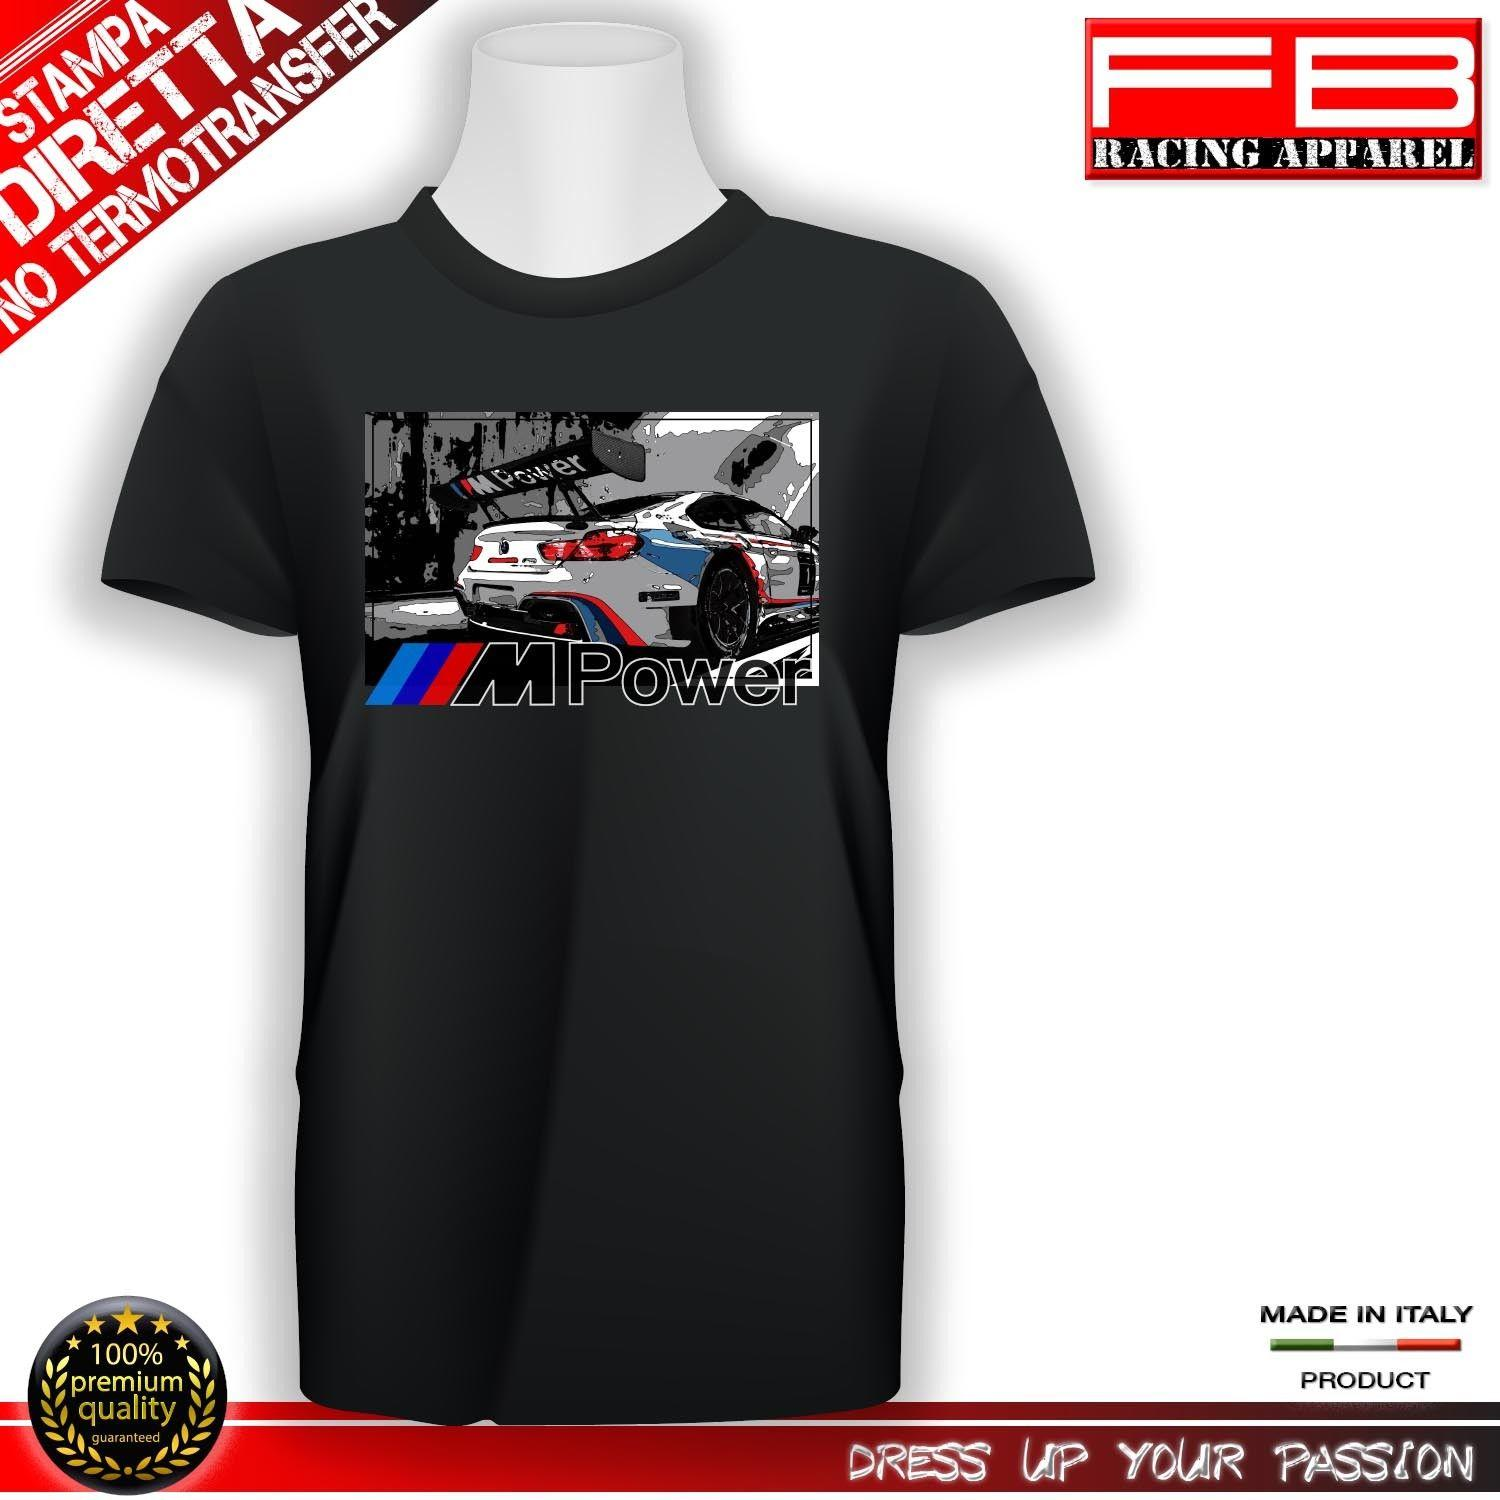 e474bdea7 T Shirt Men O Neck High Quality Hot Sell M Power M Performance M1 M3 M4 M5  M6 Tuning Top Quality ! Awesome T Shirt Clever T Shirts From Onecktshirt,  ...